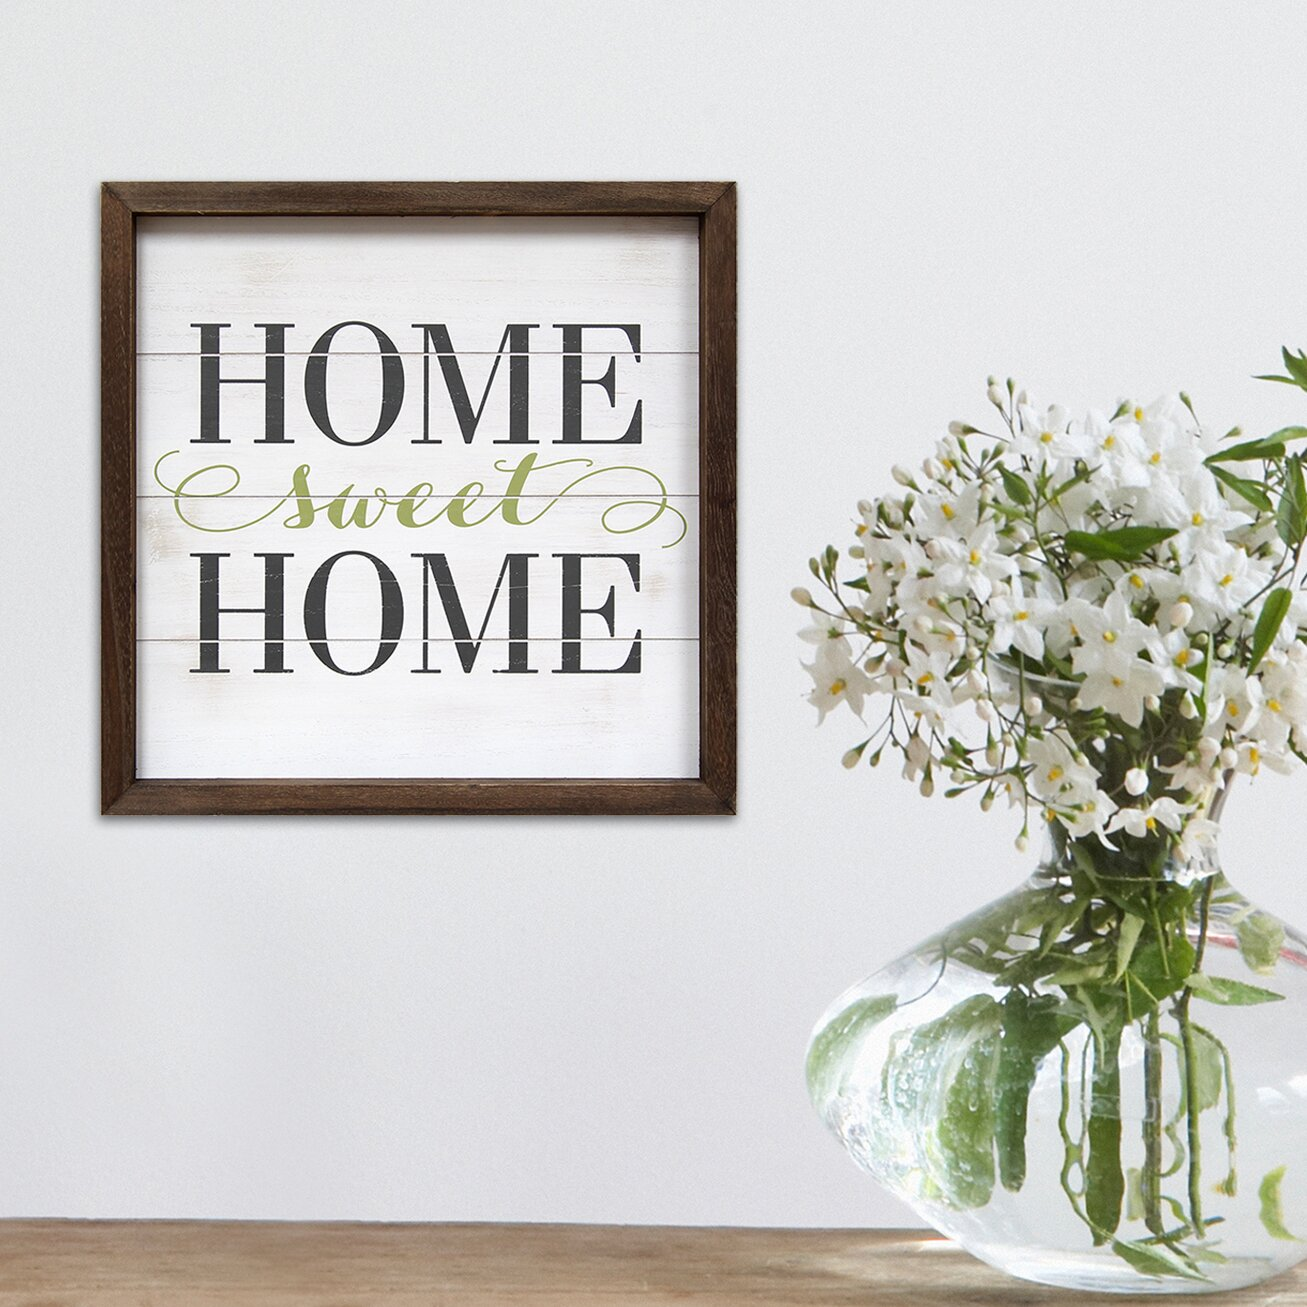 Stratton home decor home sweet home framed textual art for Decorative home